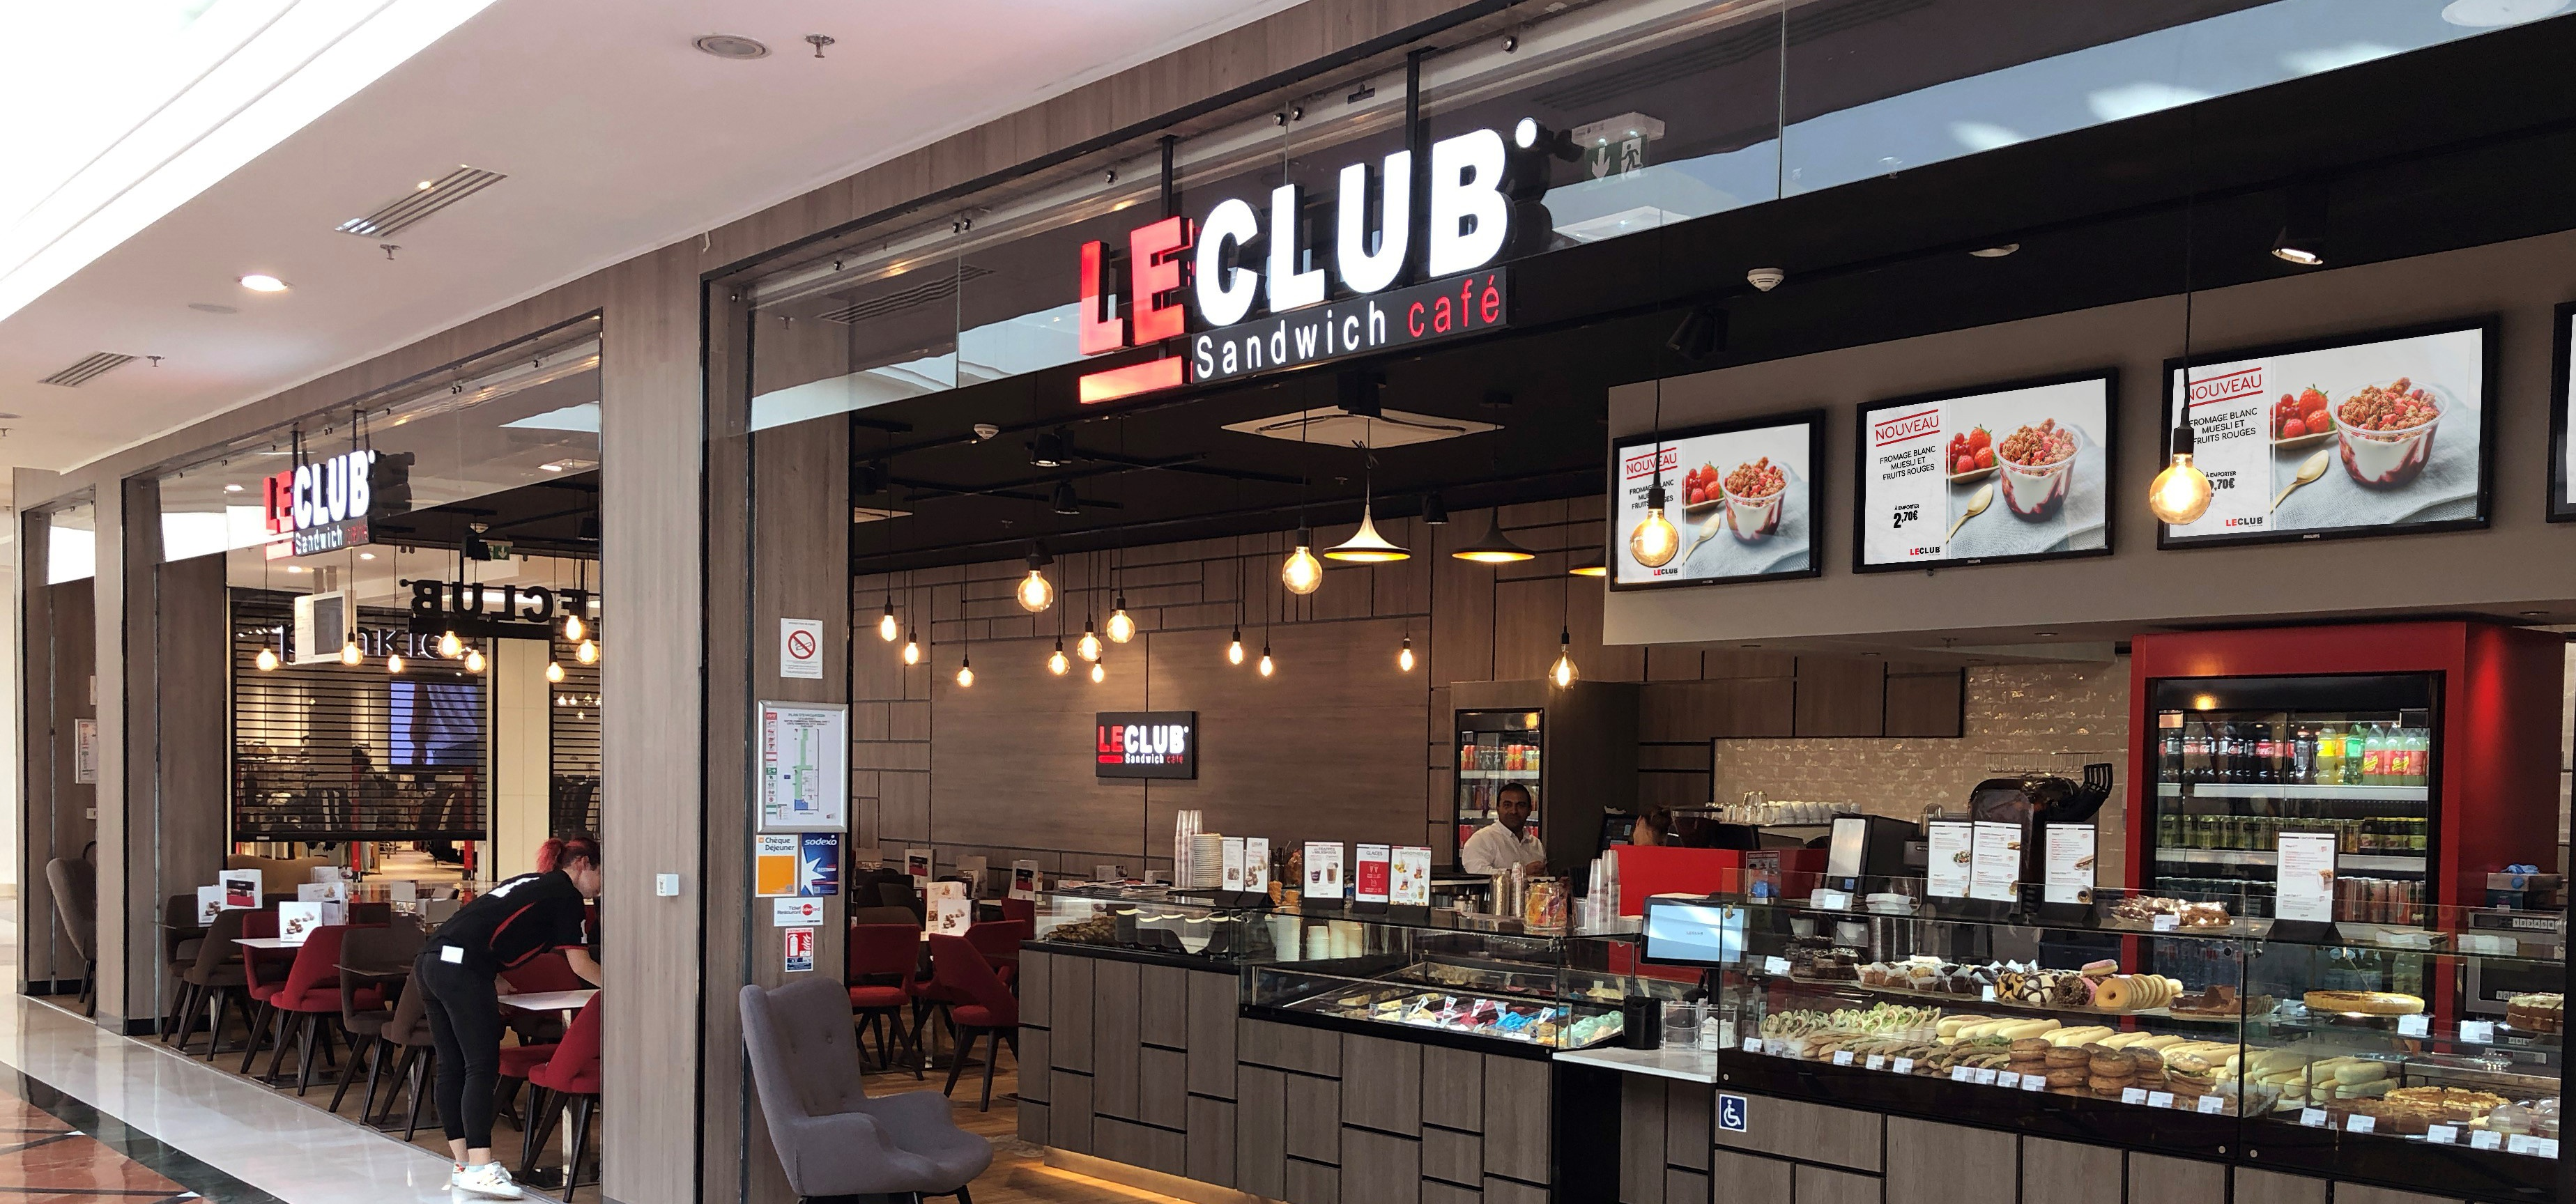 Monte Ta Franchise et Le Club Sandwich cafe s'associent